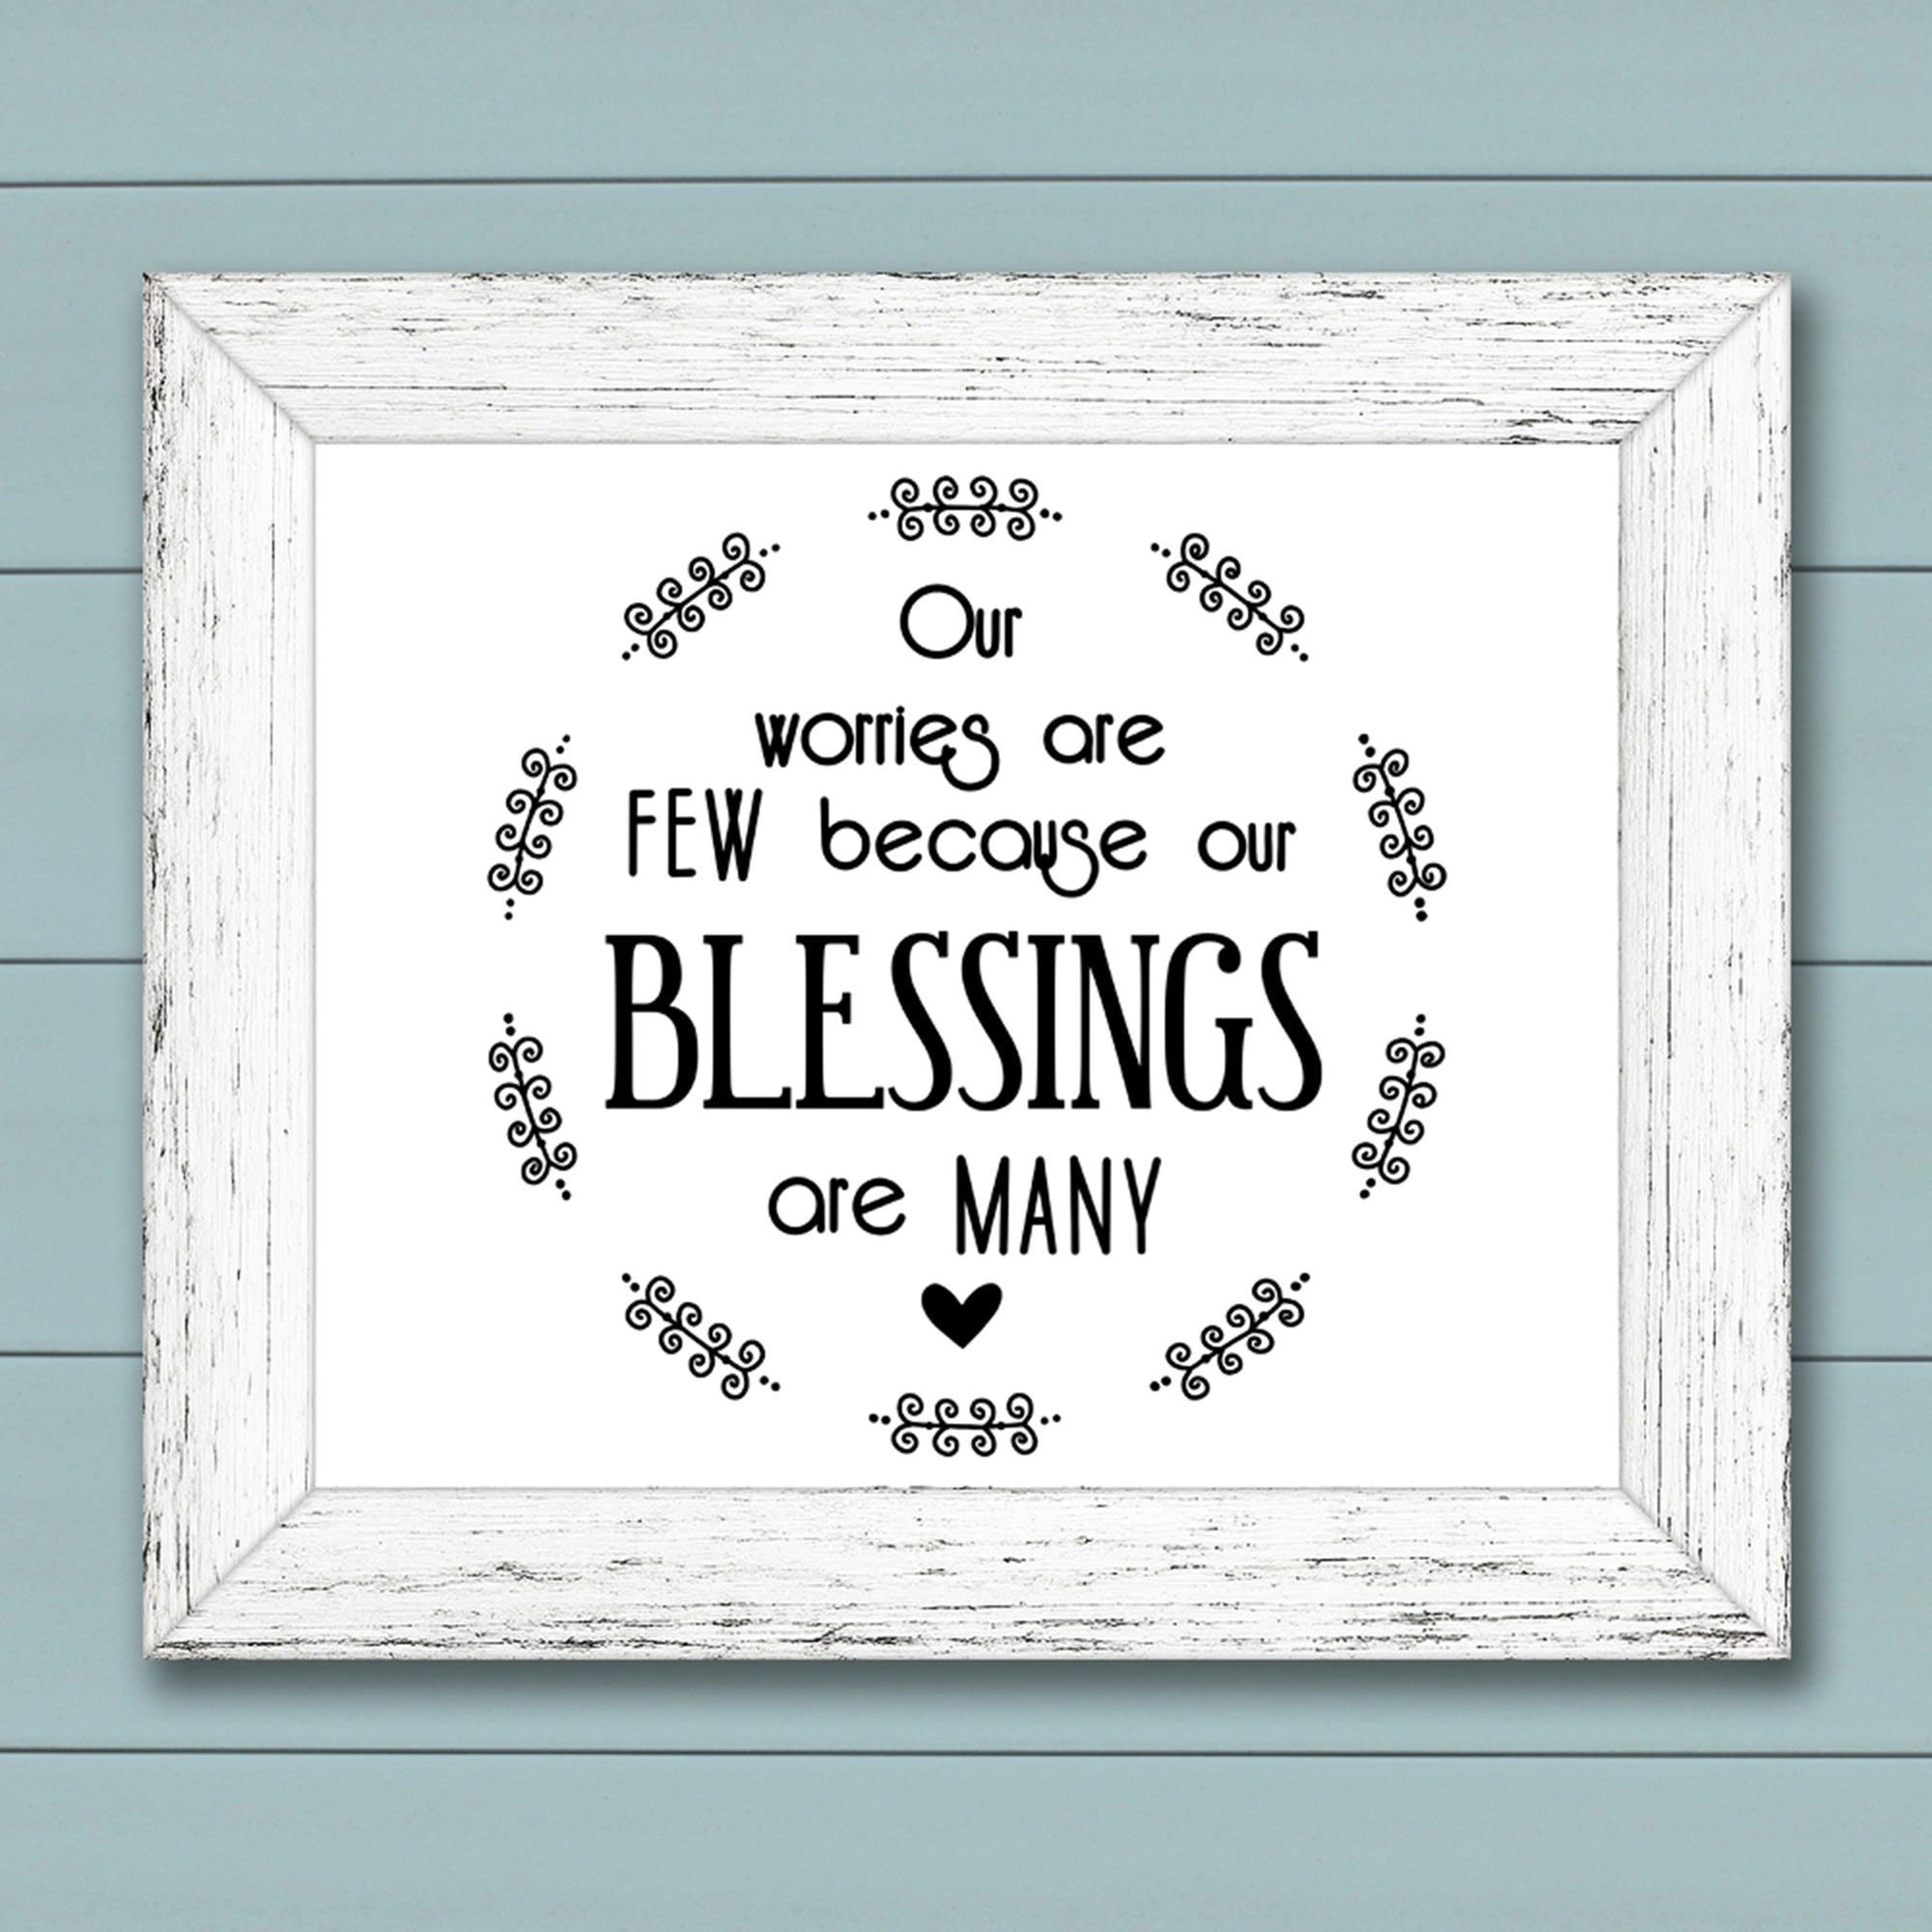 SVG File for Round Sign, Blessings Quote SVG, Rond Inspirational Quote SVG, Wood Sign Saying SVG, Rustic Sign SVG File